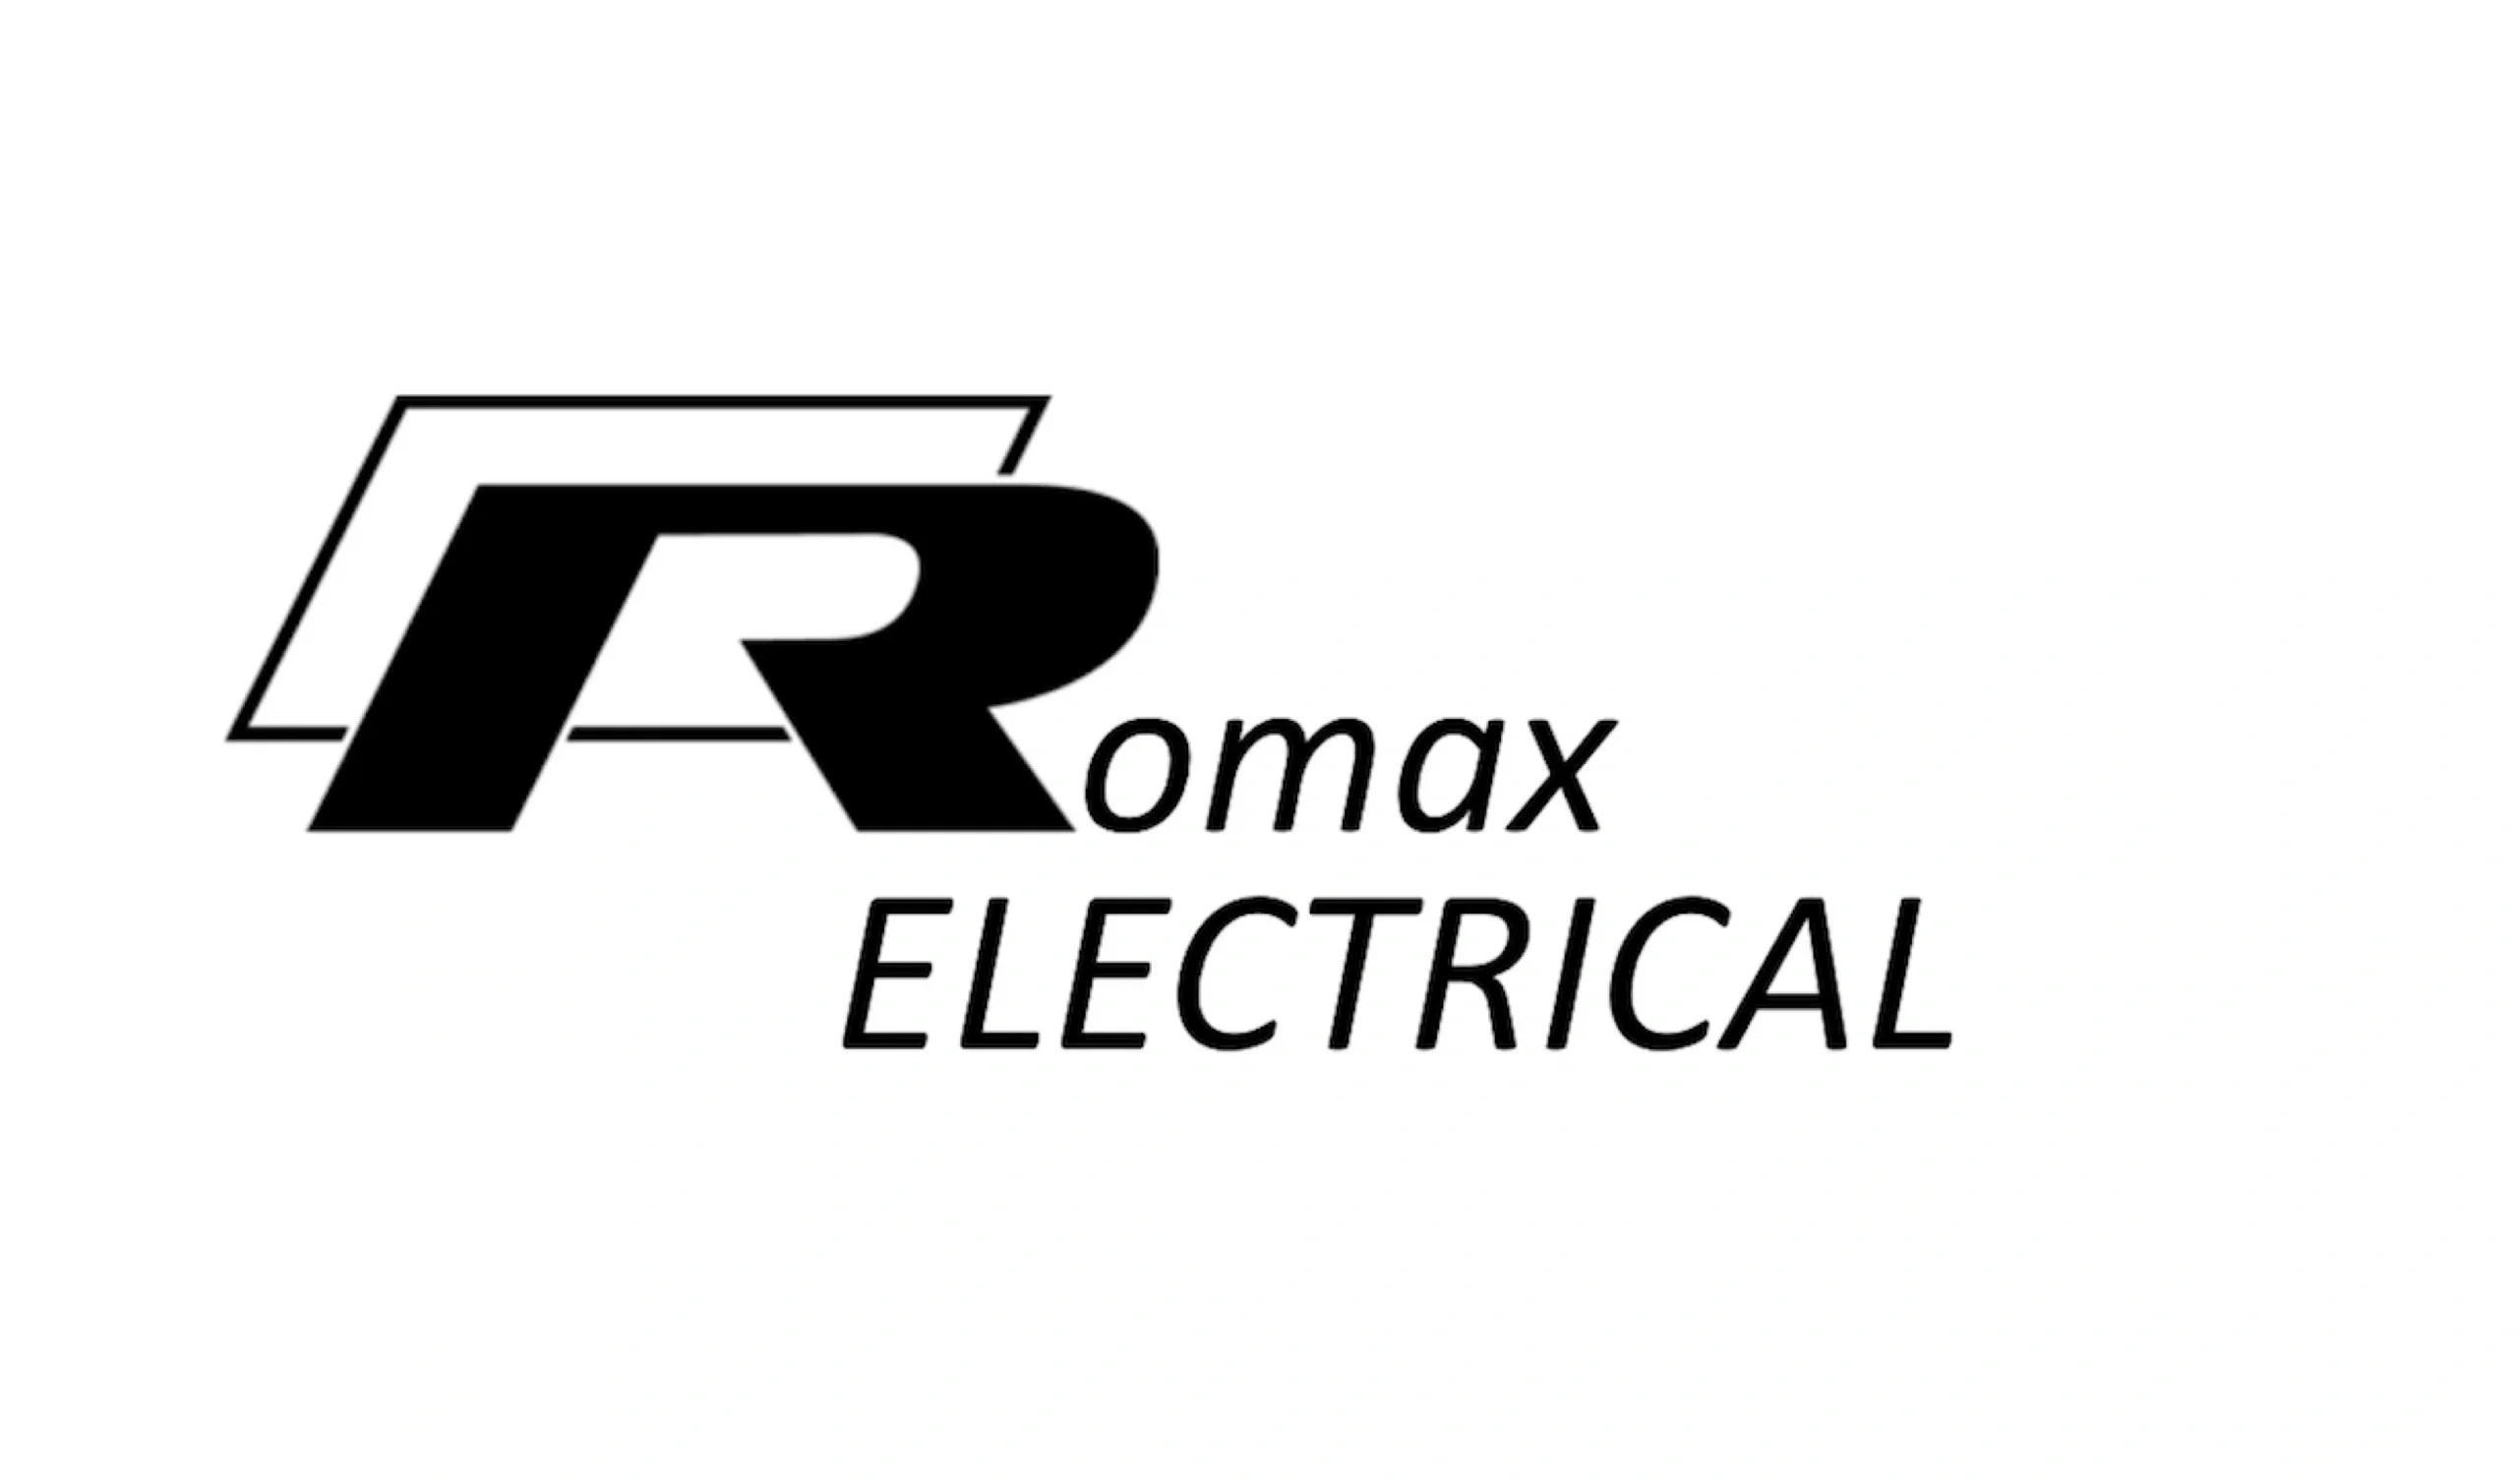 Romax Electrical